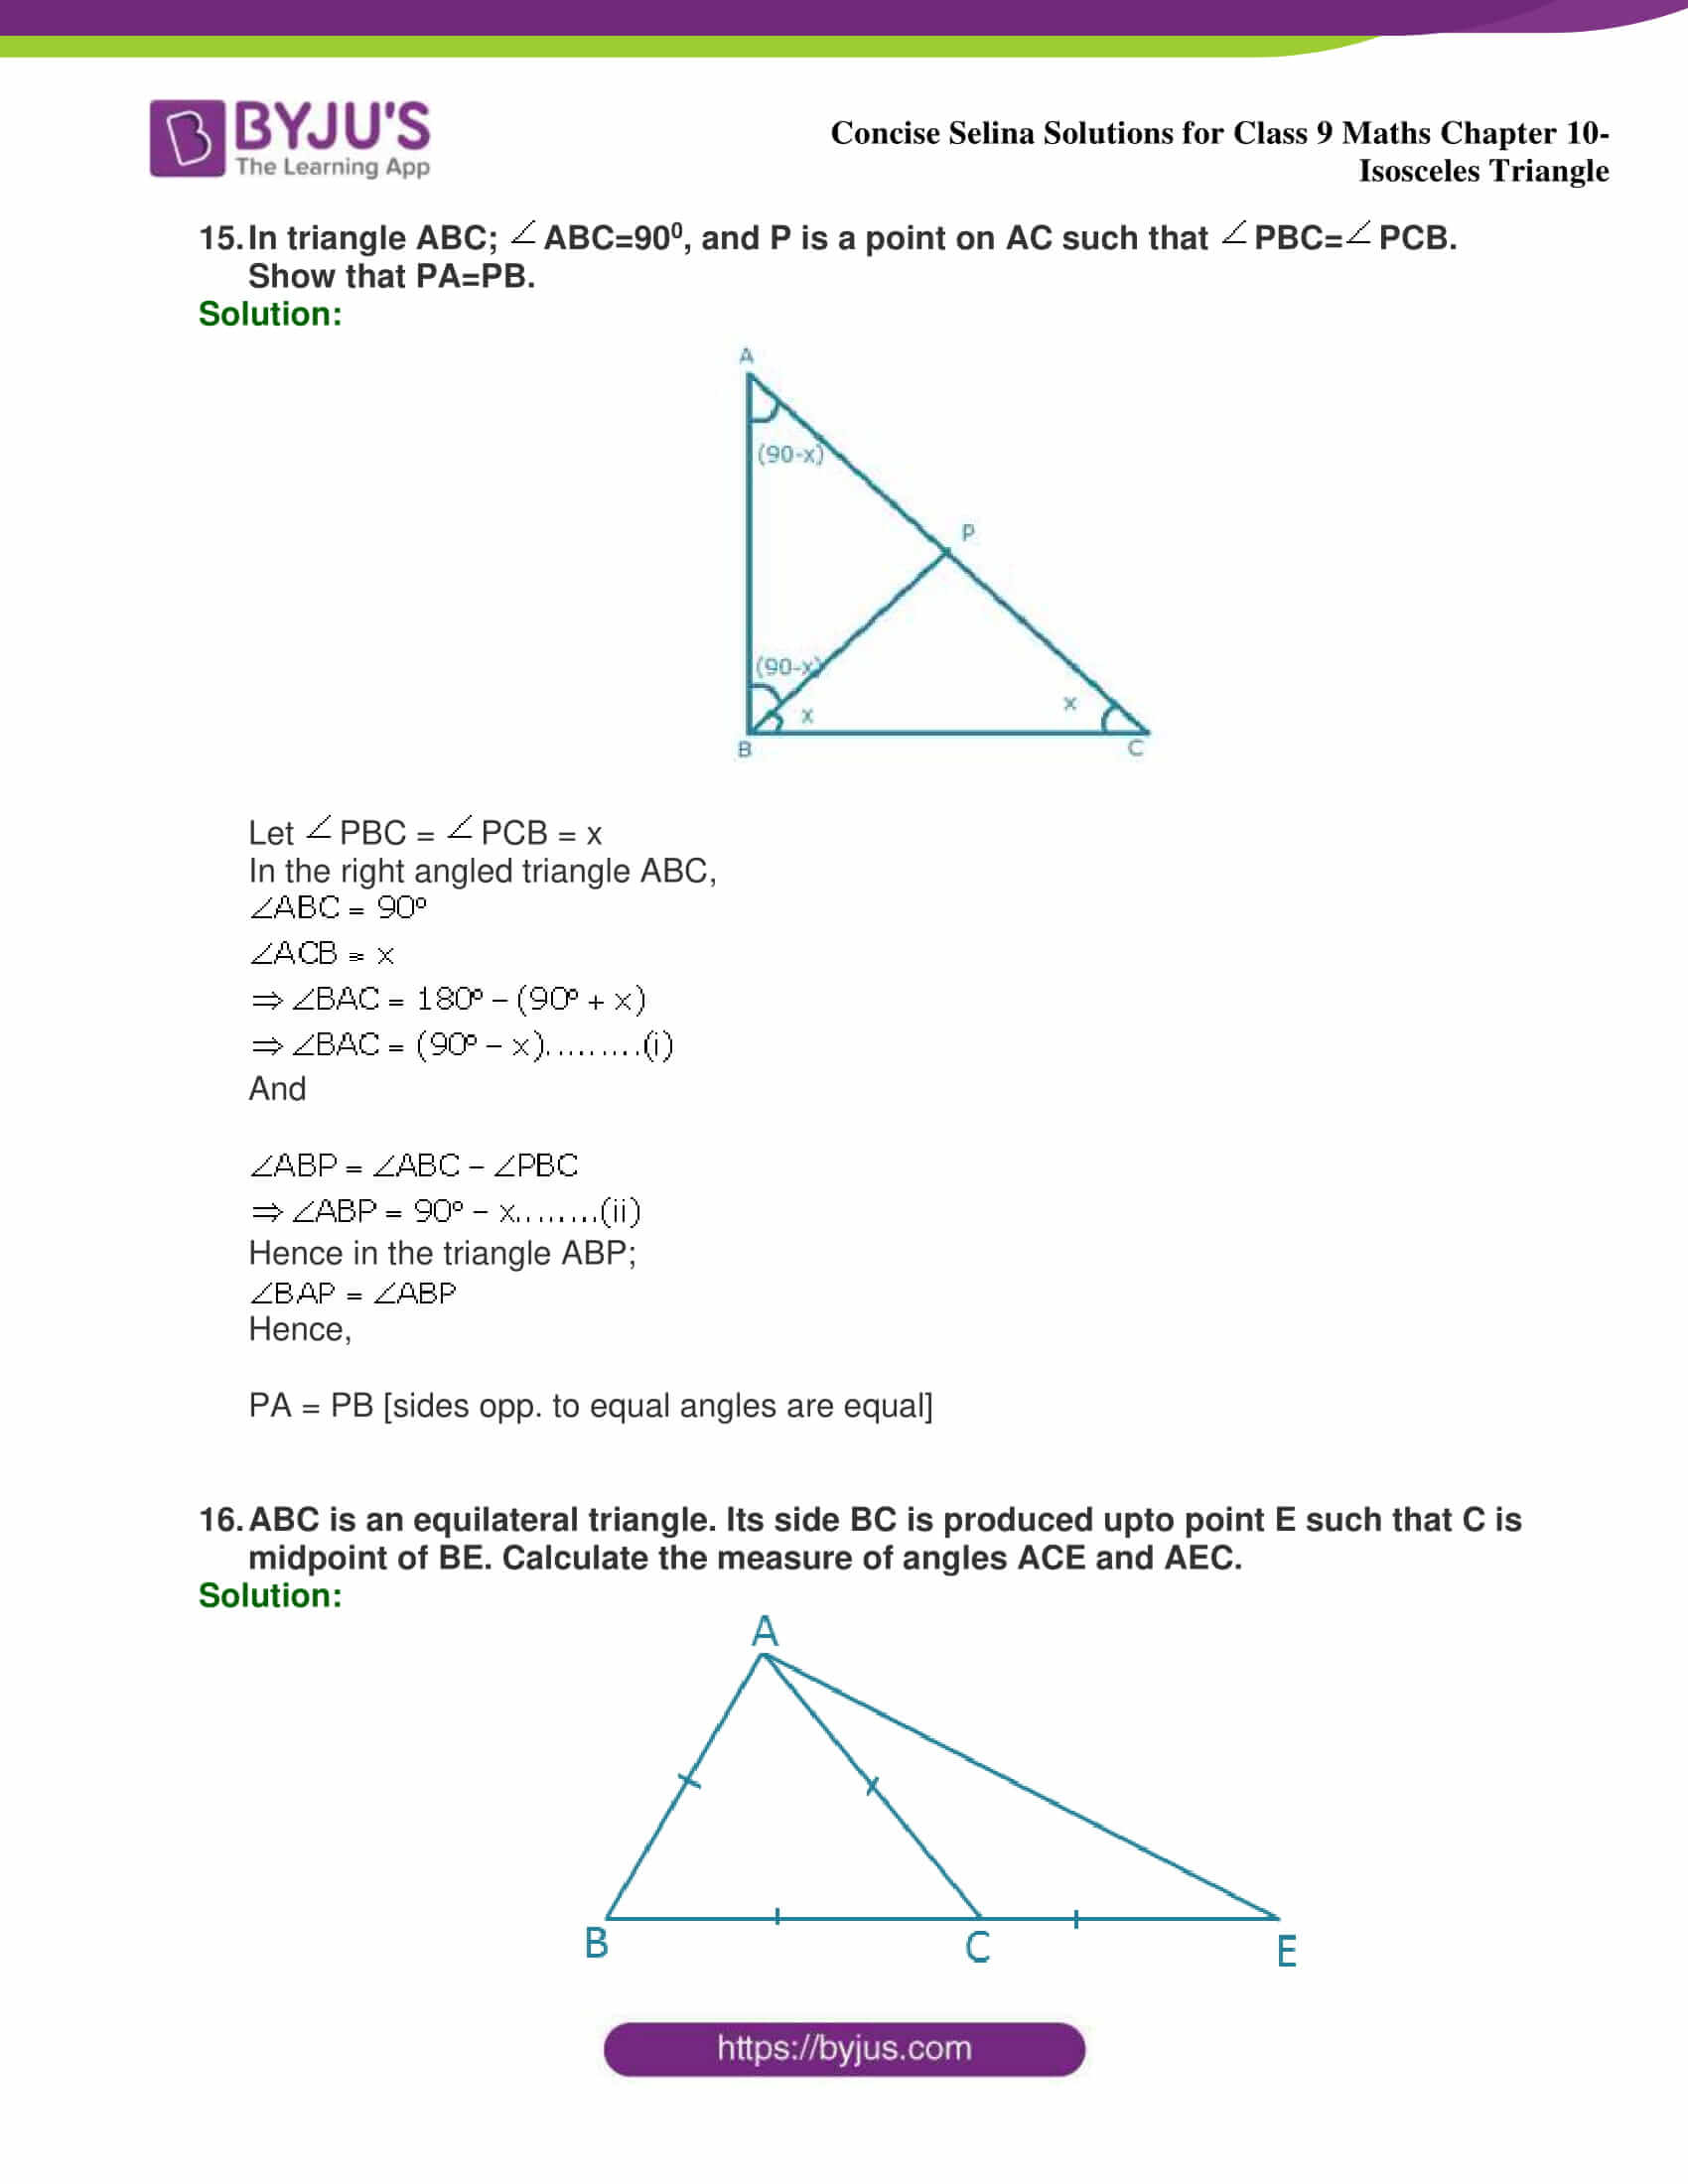 selina Solutions for Class 9 Maths Chapter 10 part 15